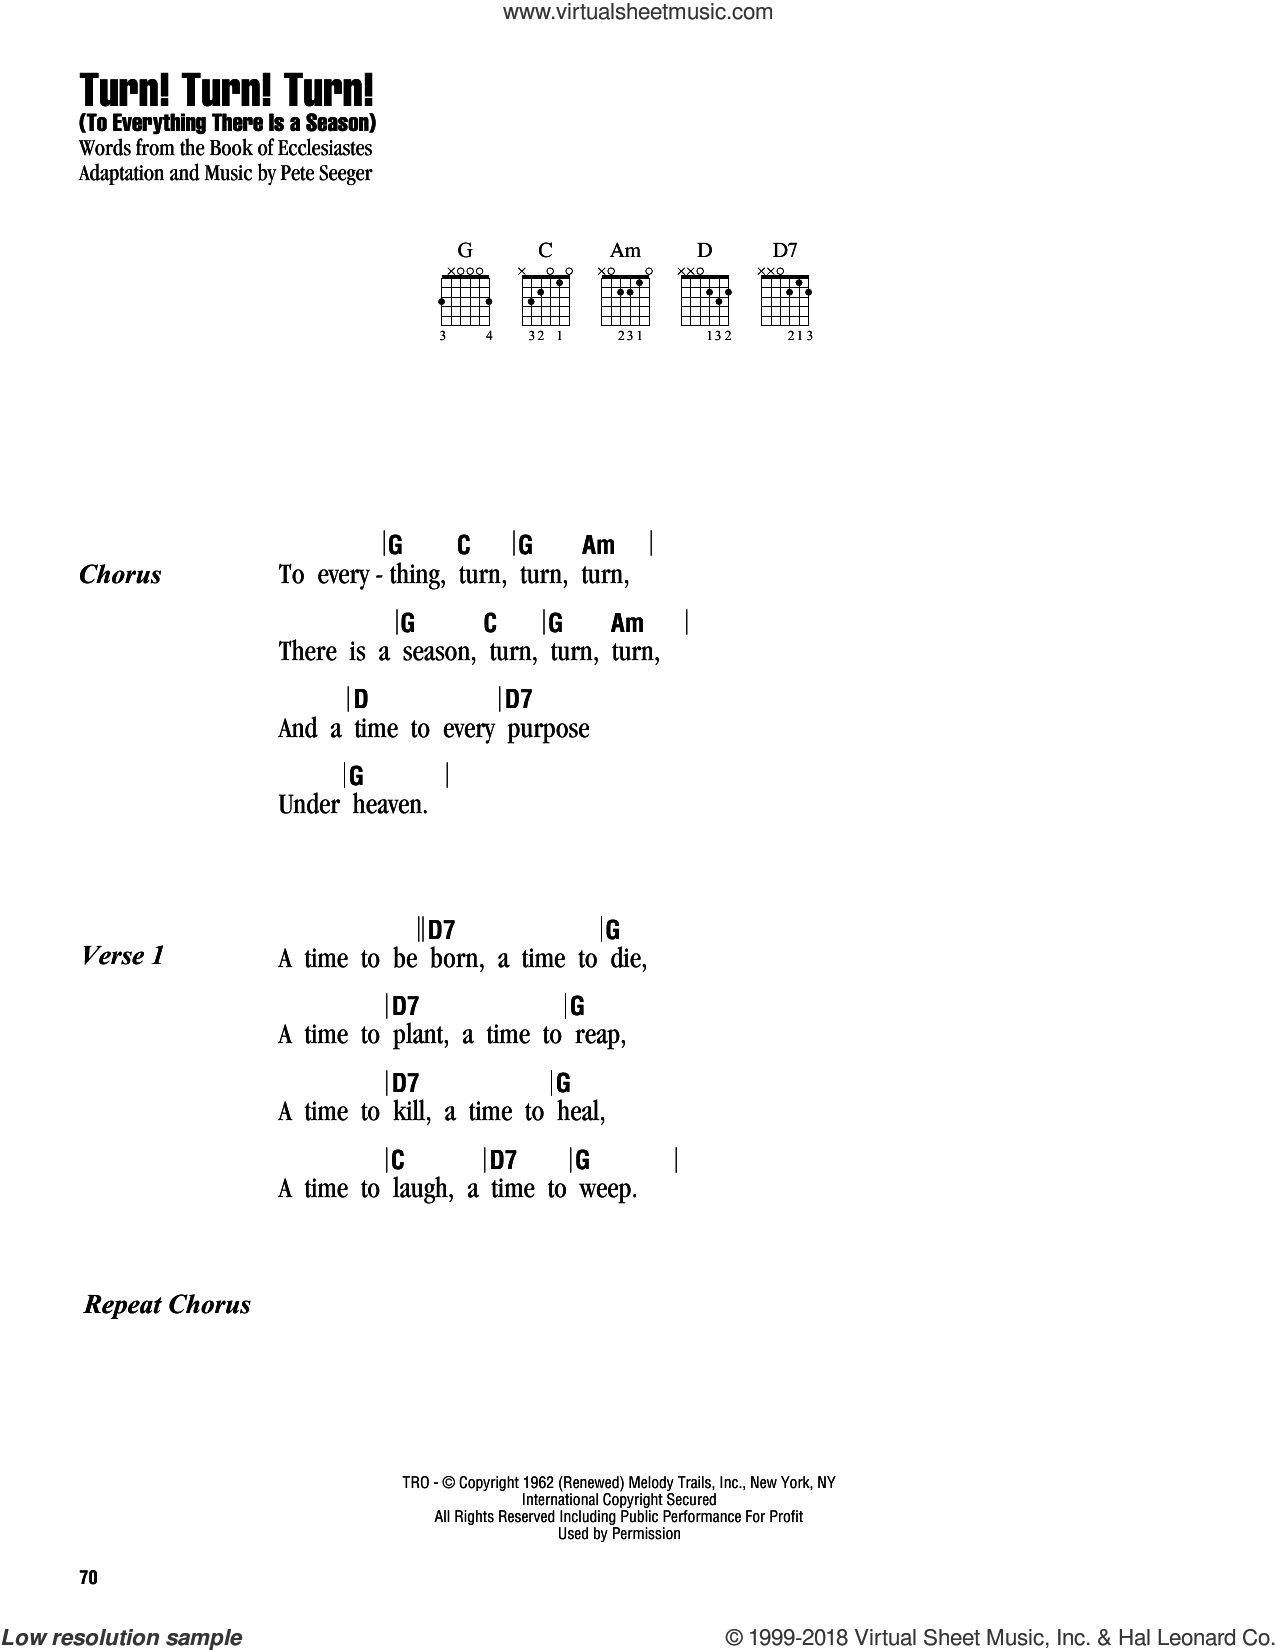 Turn! Turn! Turn! (To Everything There Is A Season) sheet music for guitar (chords) by The Byrds and Pete Seeger, intermediate guitar (chords). Score Image Preview.